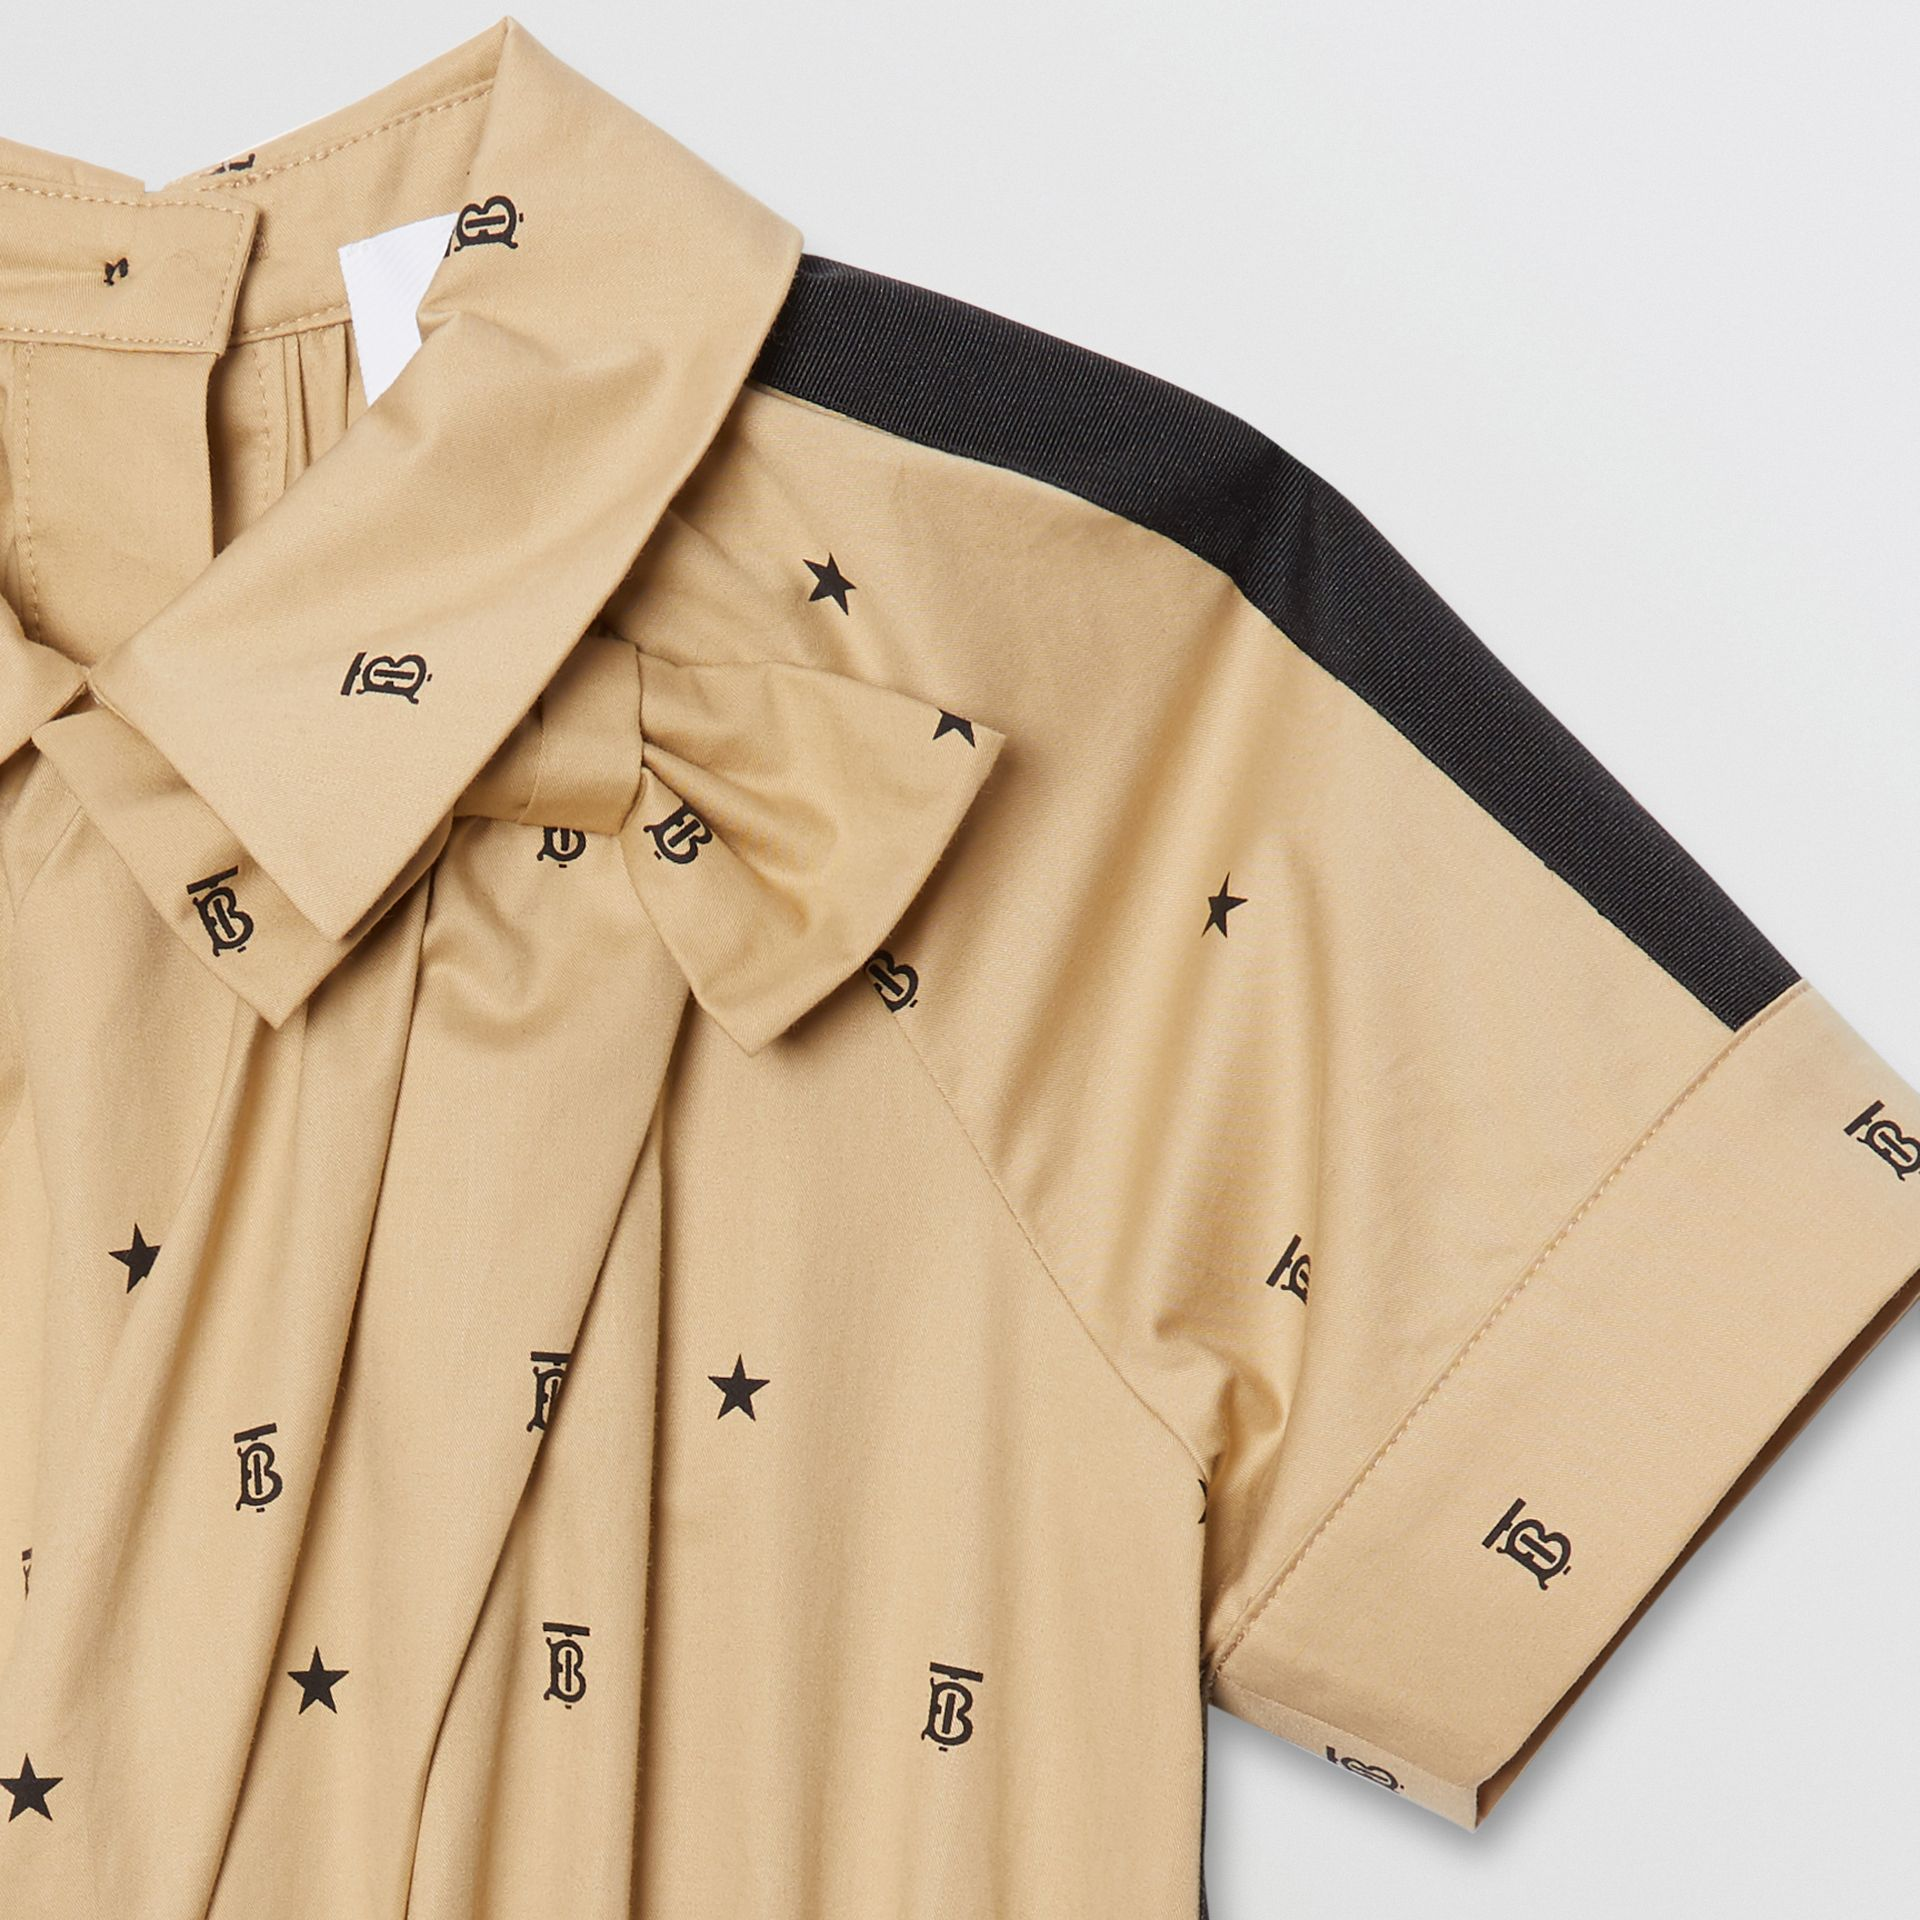 Star and Monogram Motif Stretch Cotton Dress in Sand | Burberry - gallery image 3